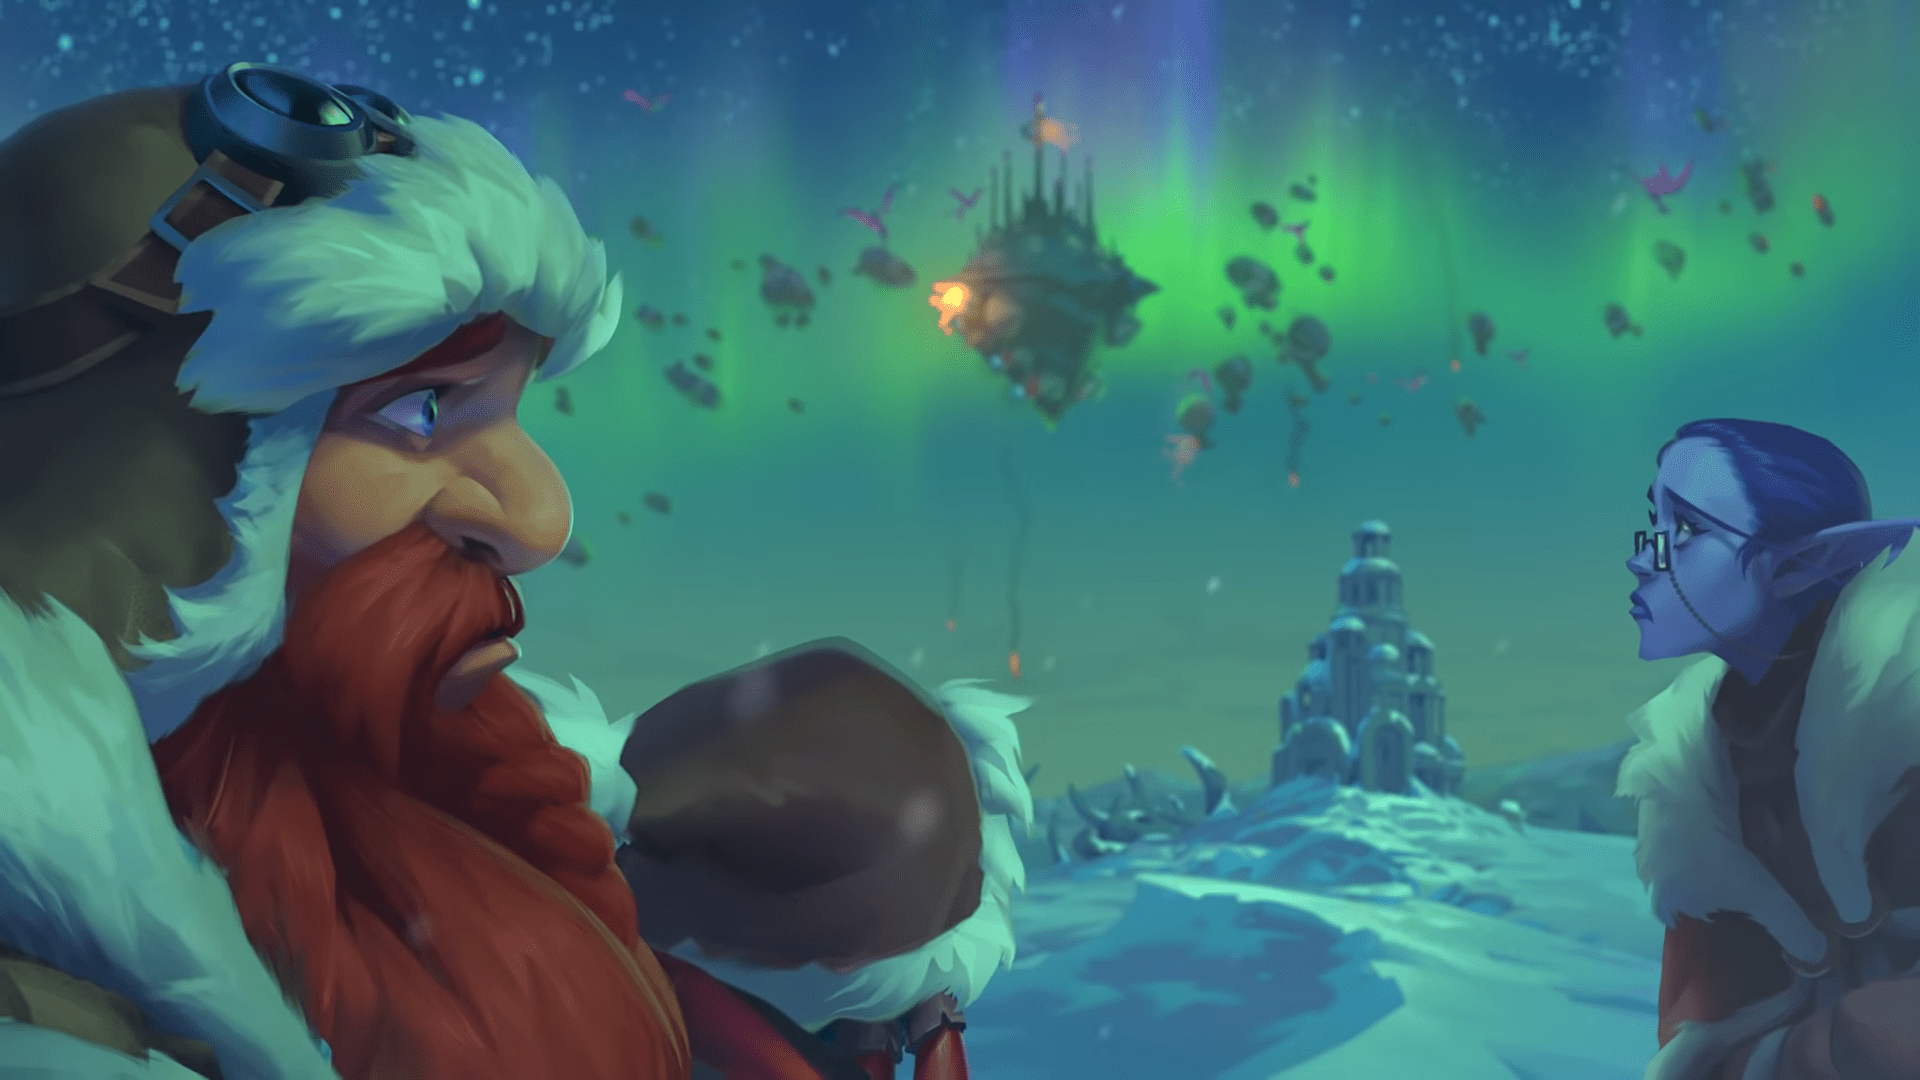 Hearthstone: Galakrond's Awakening Chapter 1 Goes Live For Free, Rewards Four New Cards